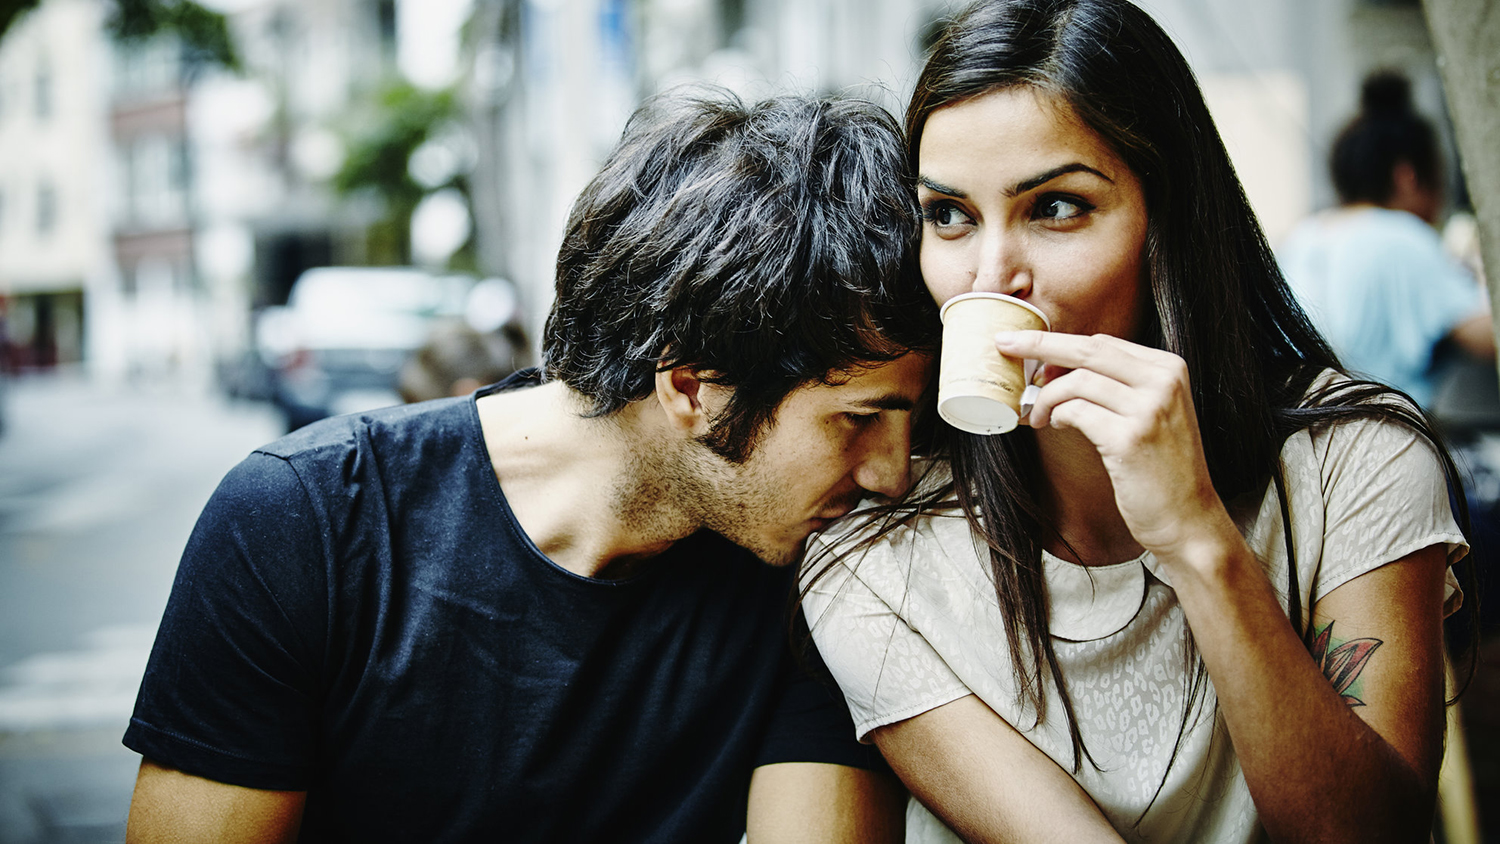 Couples Who Have the Best Sex Have This Important Thing in Common